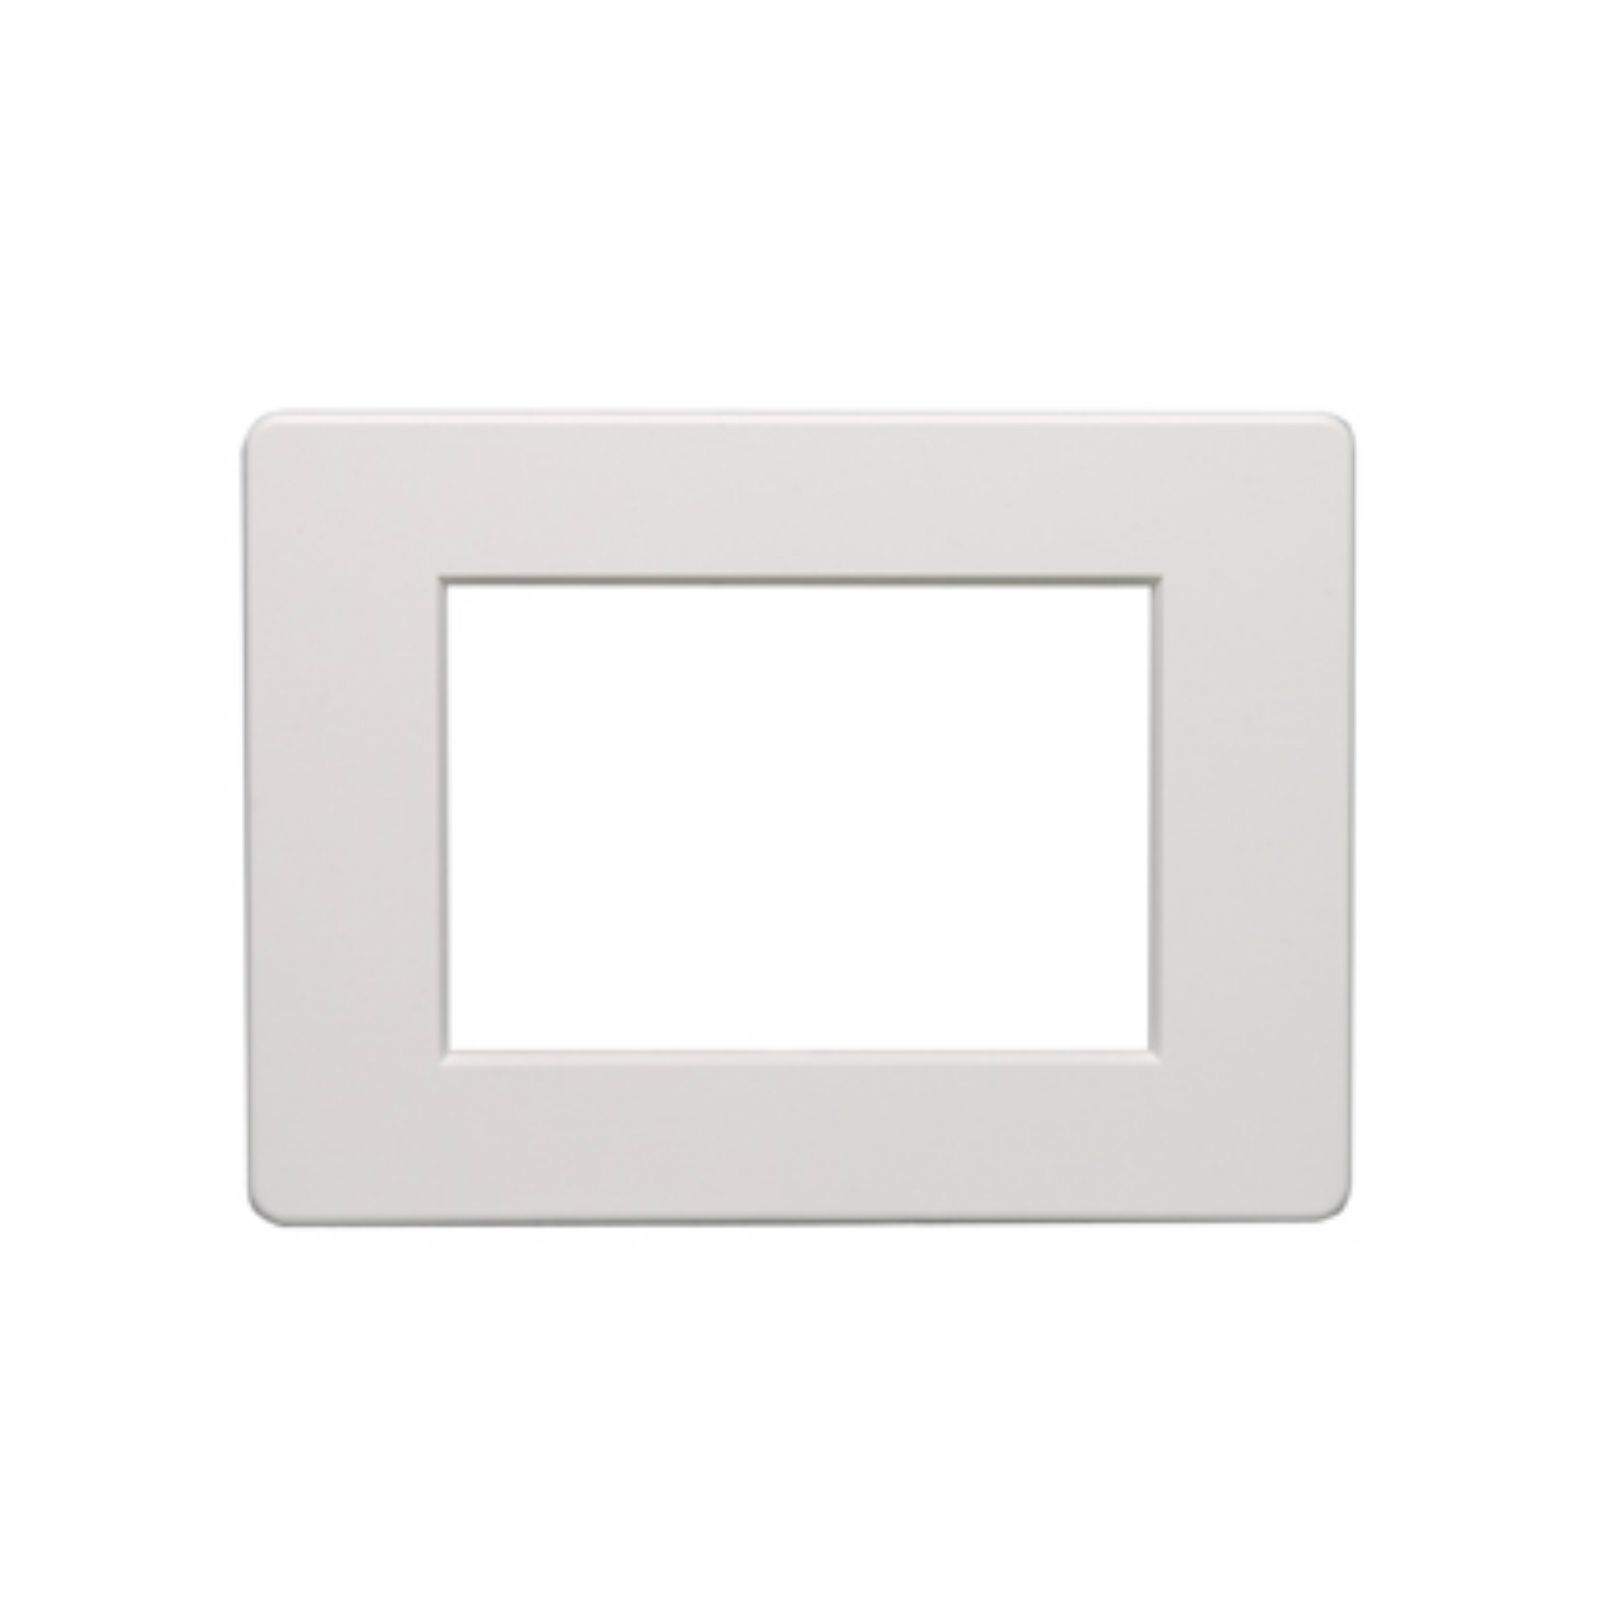 Lux WP111 - Wall Plate For PSD111 and PSDH121